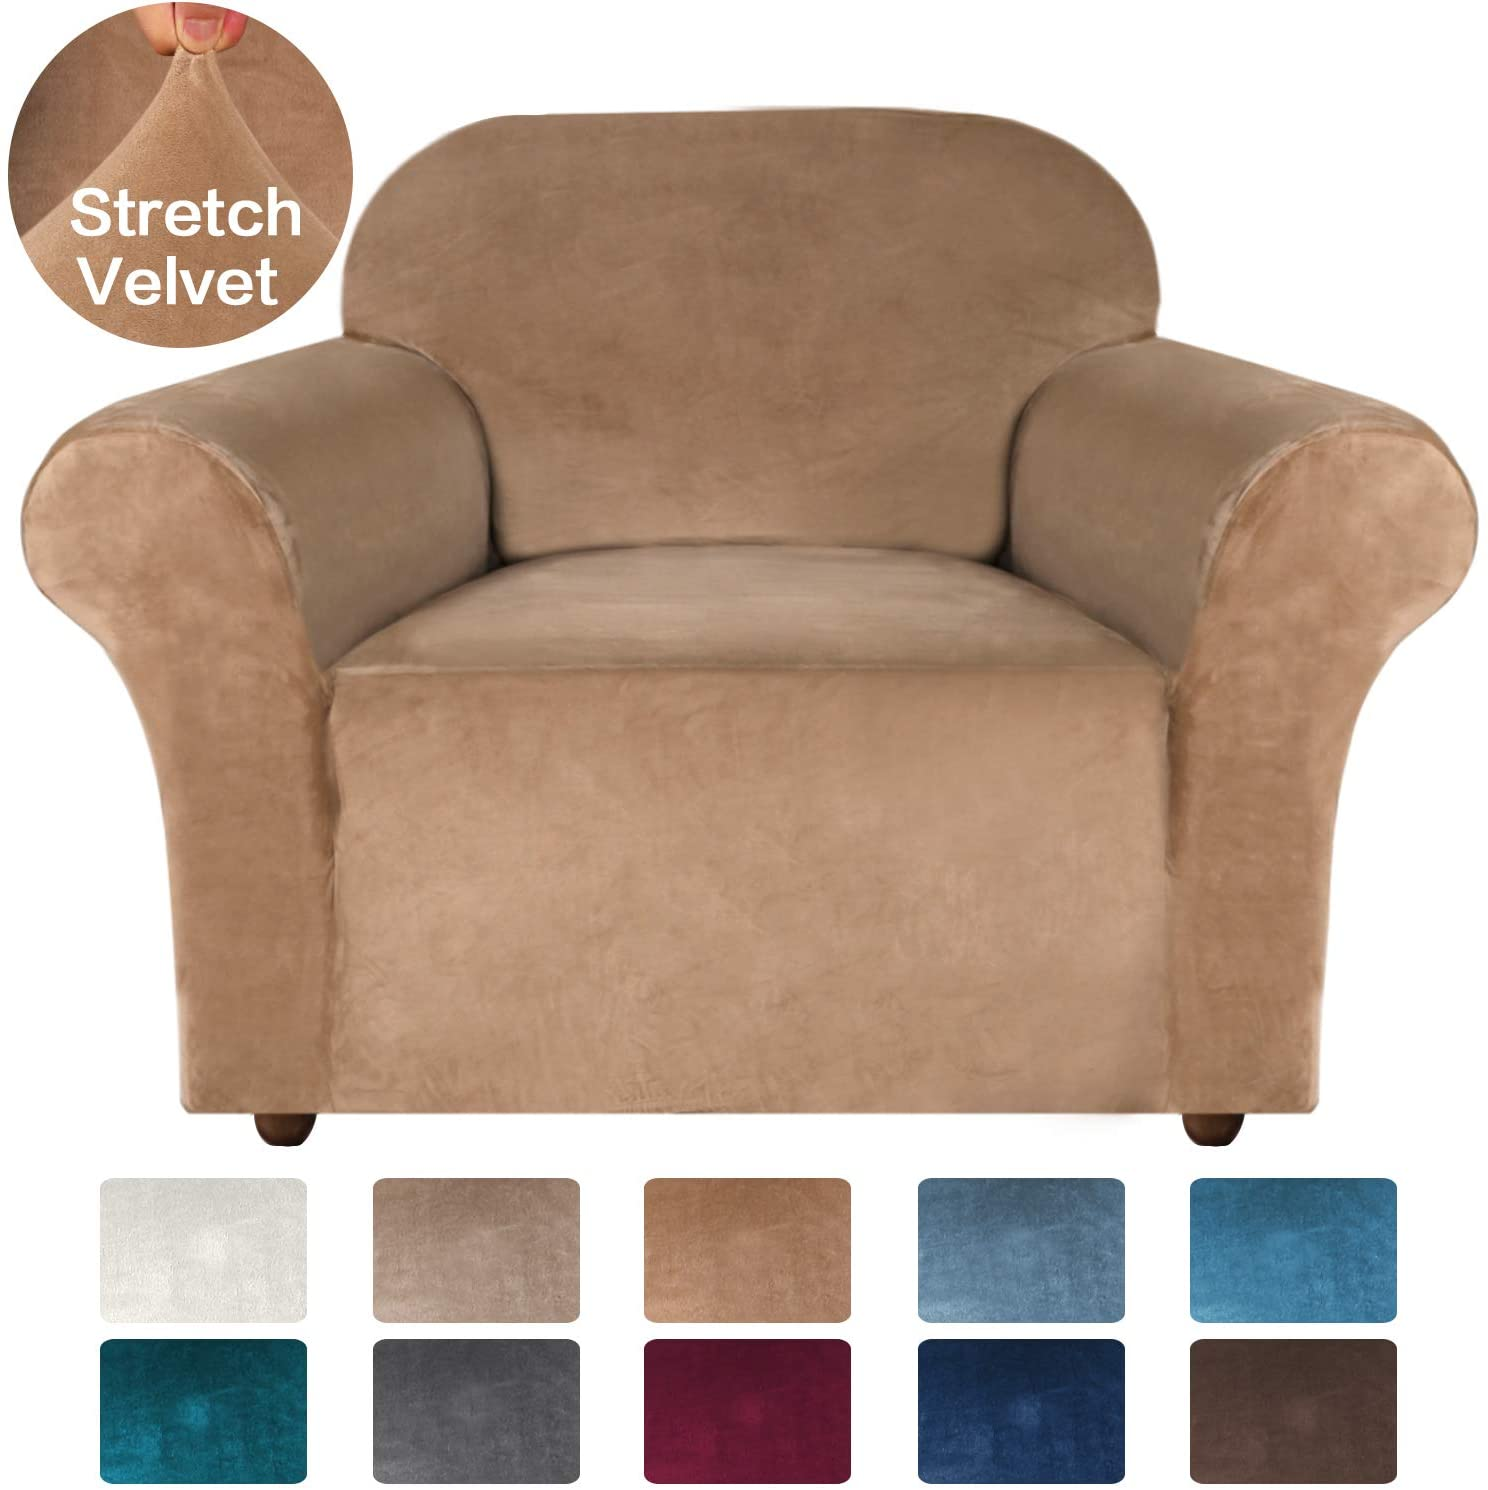 Turquoize Stretch Chair Sofa Slipcover Velvet Chair Cover Plush Couch Sofa Cover Furniture Protector Chair Couch Cover Soft with Elastic Bottom Spandex Slipcovers for Chair Protector (Chair, Camel)